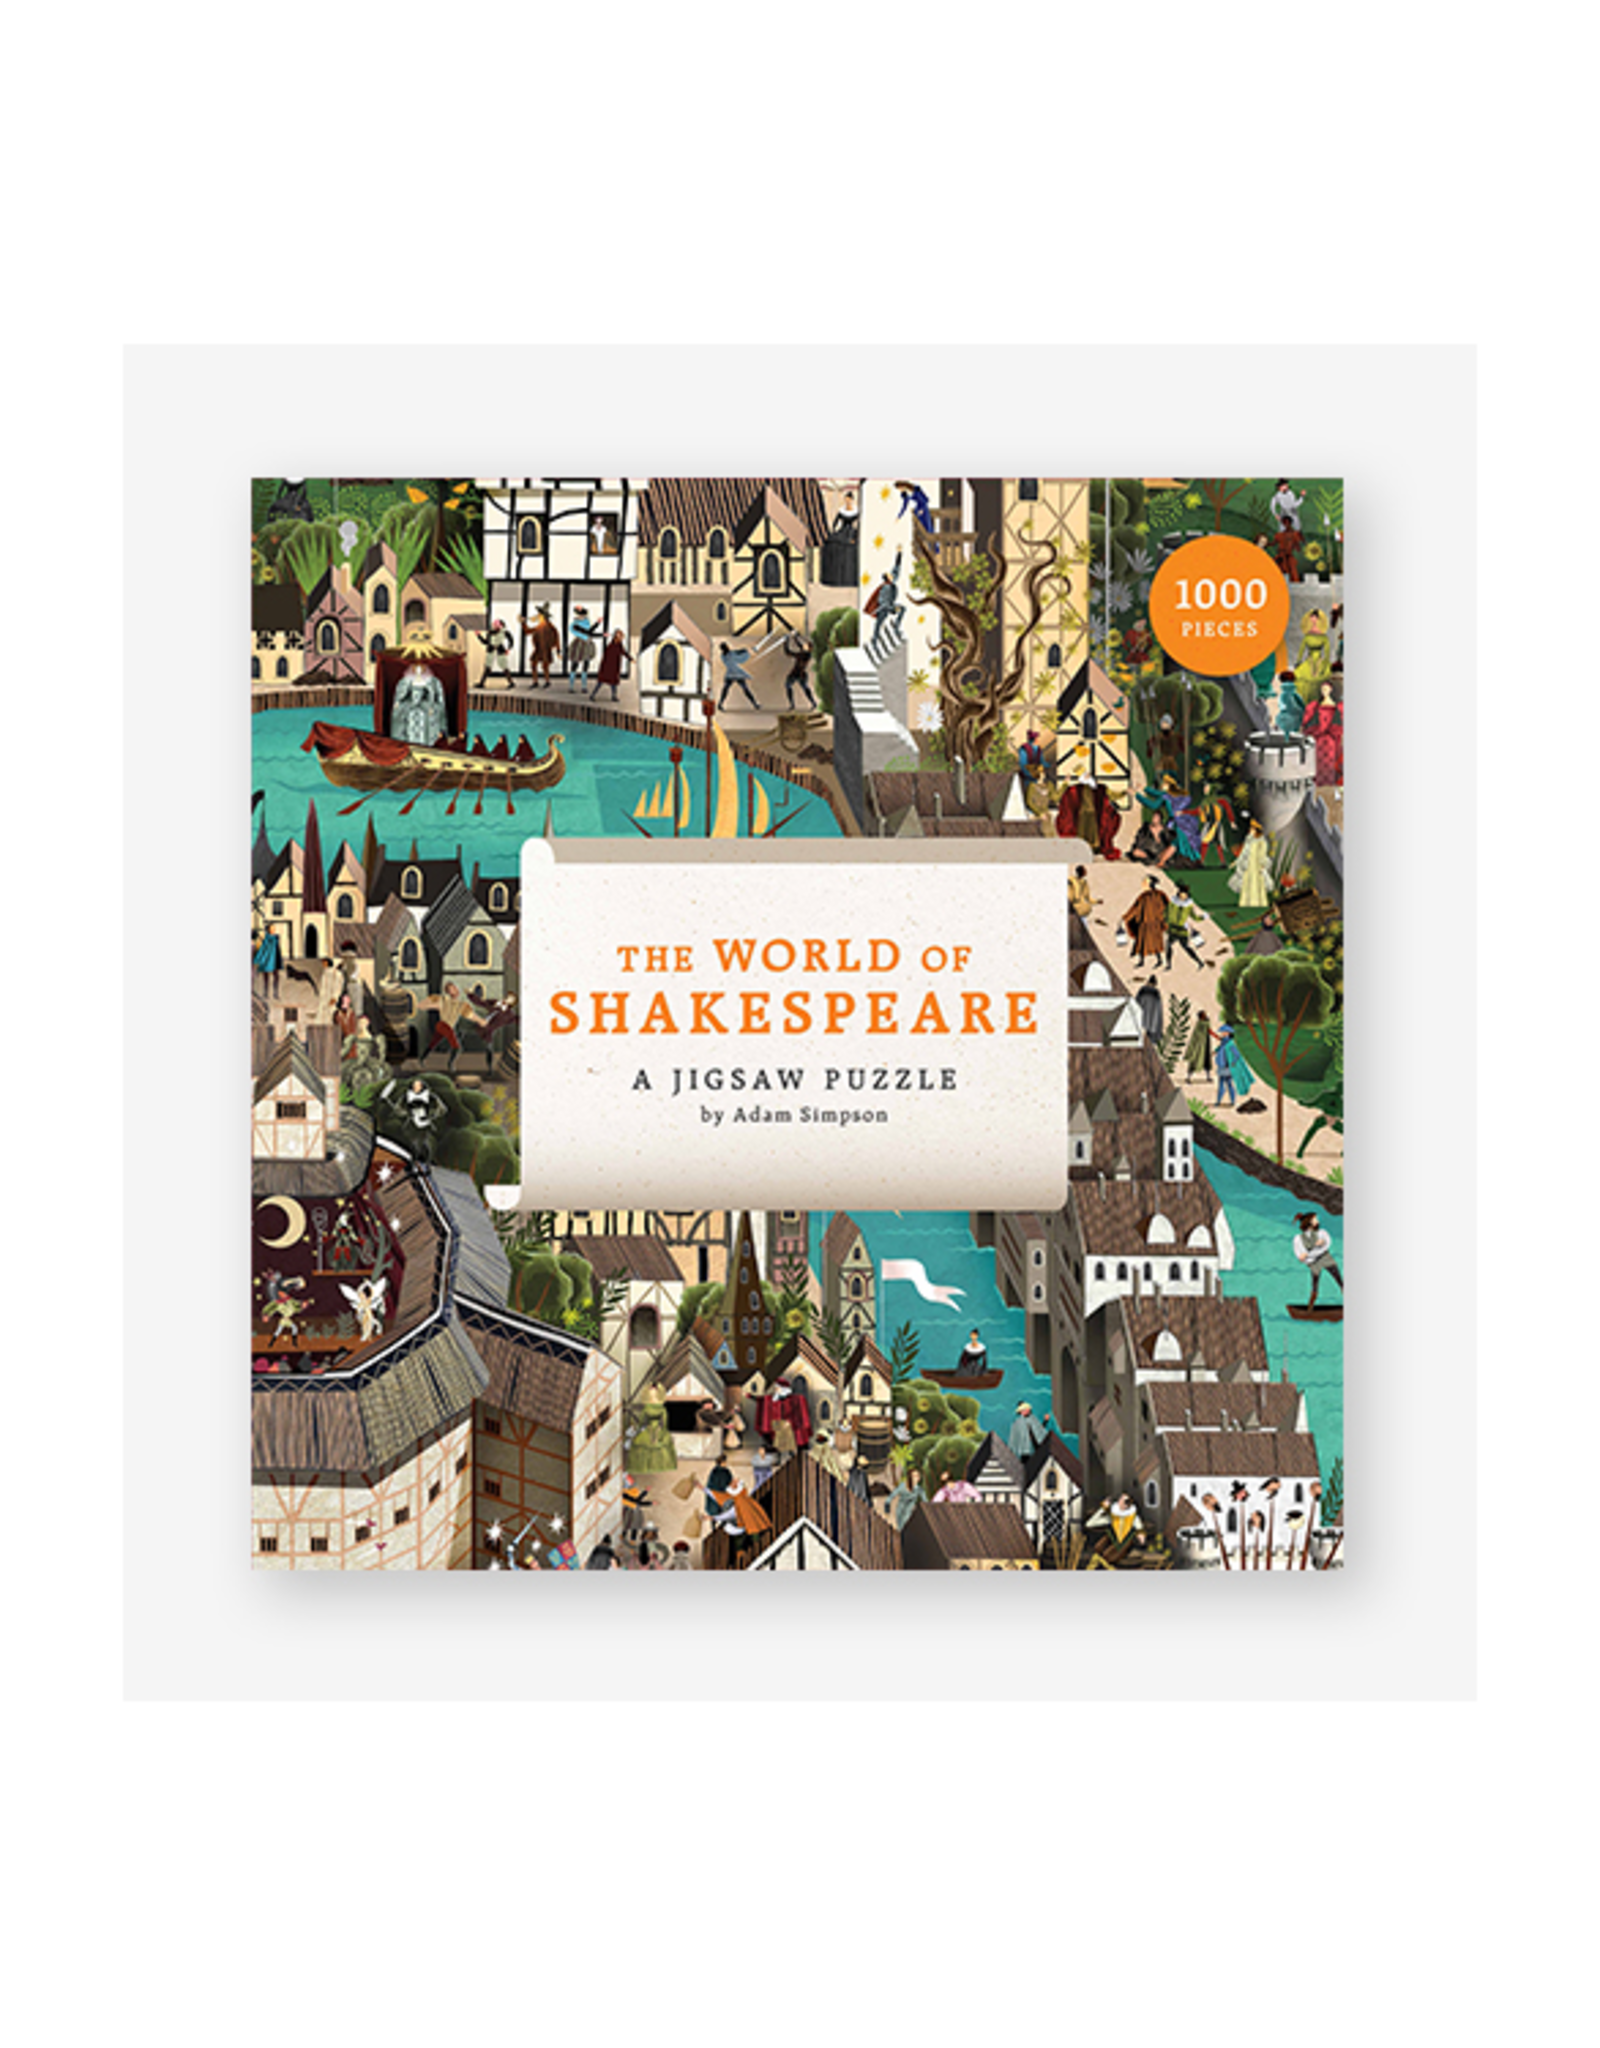 The World of Shakespeare Puzzle